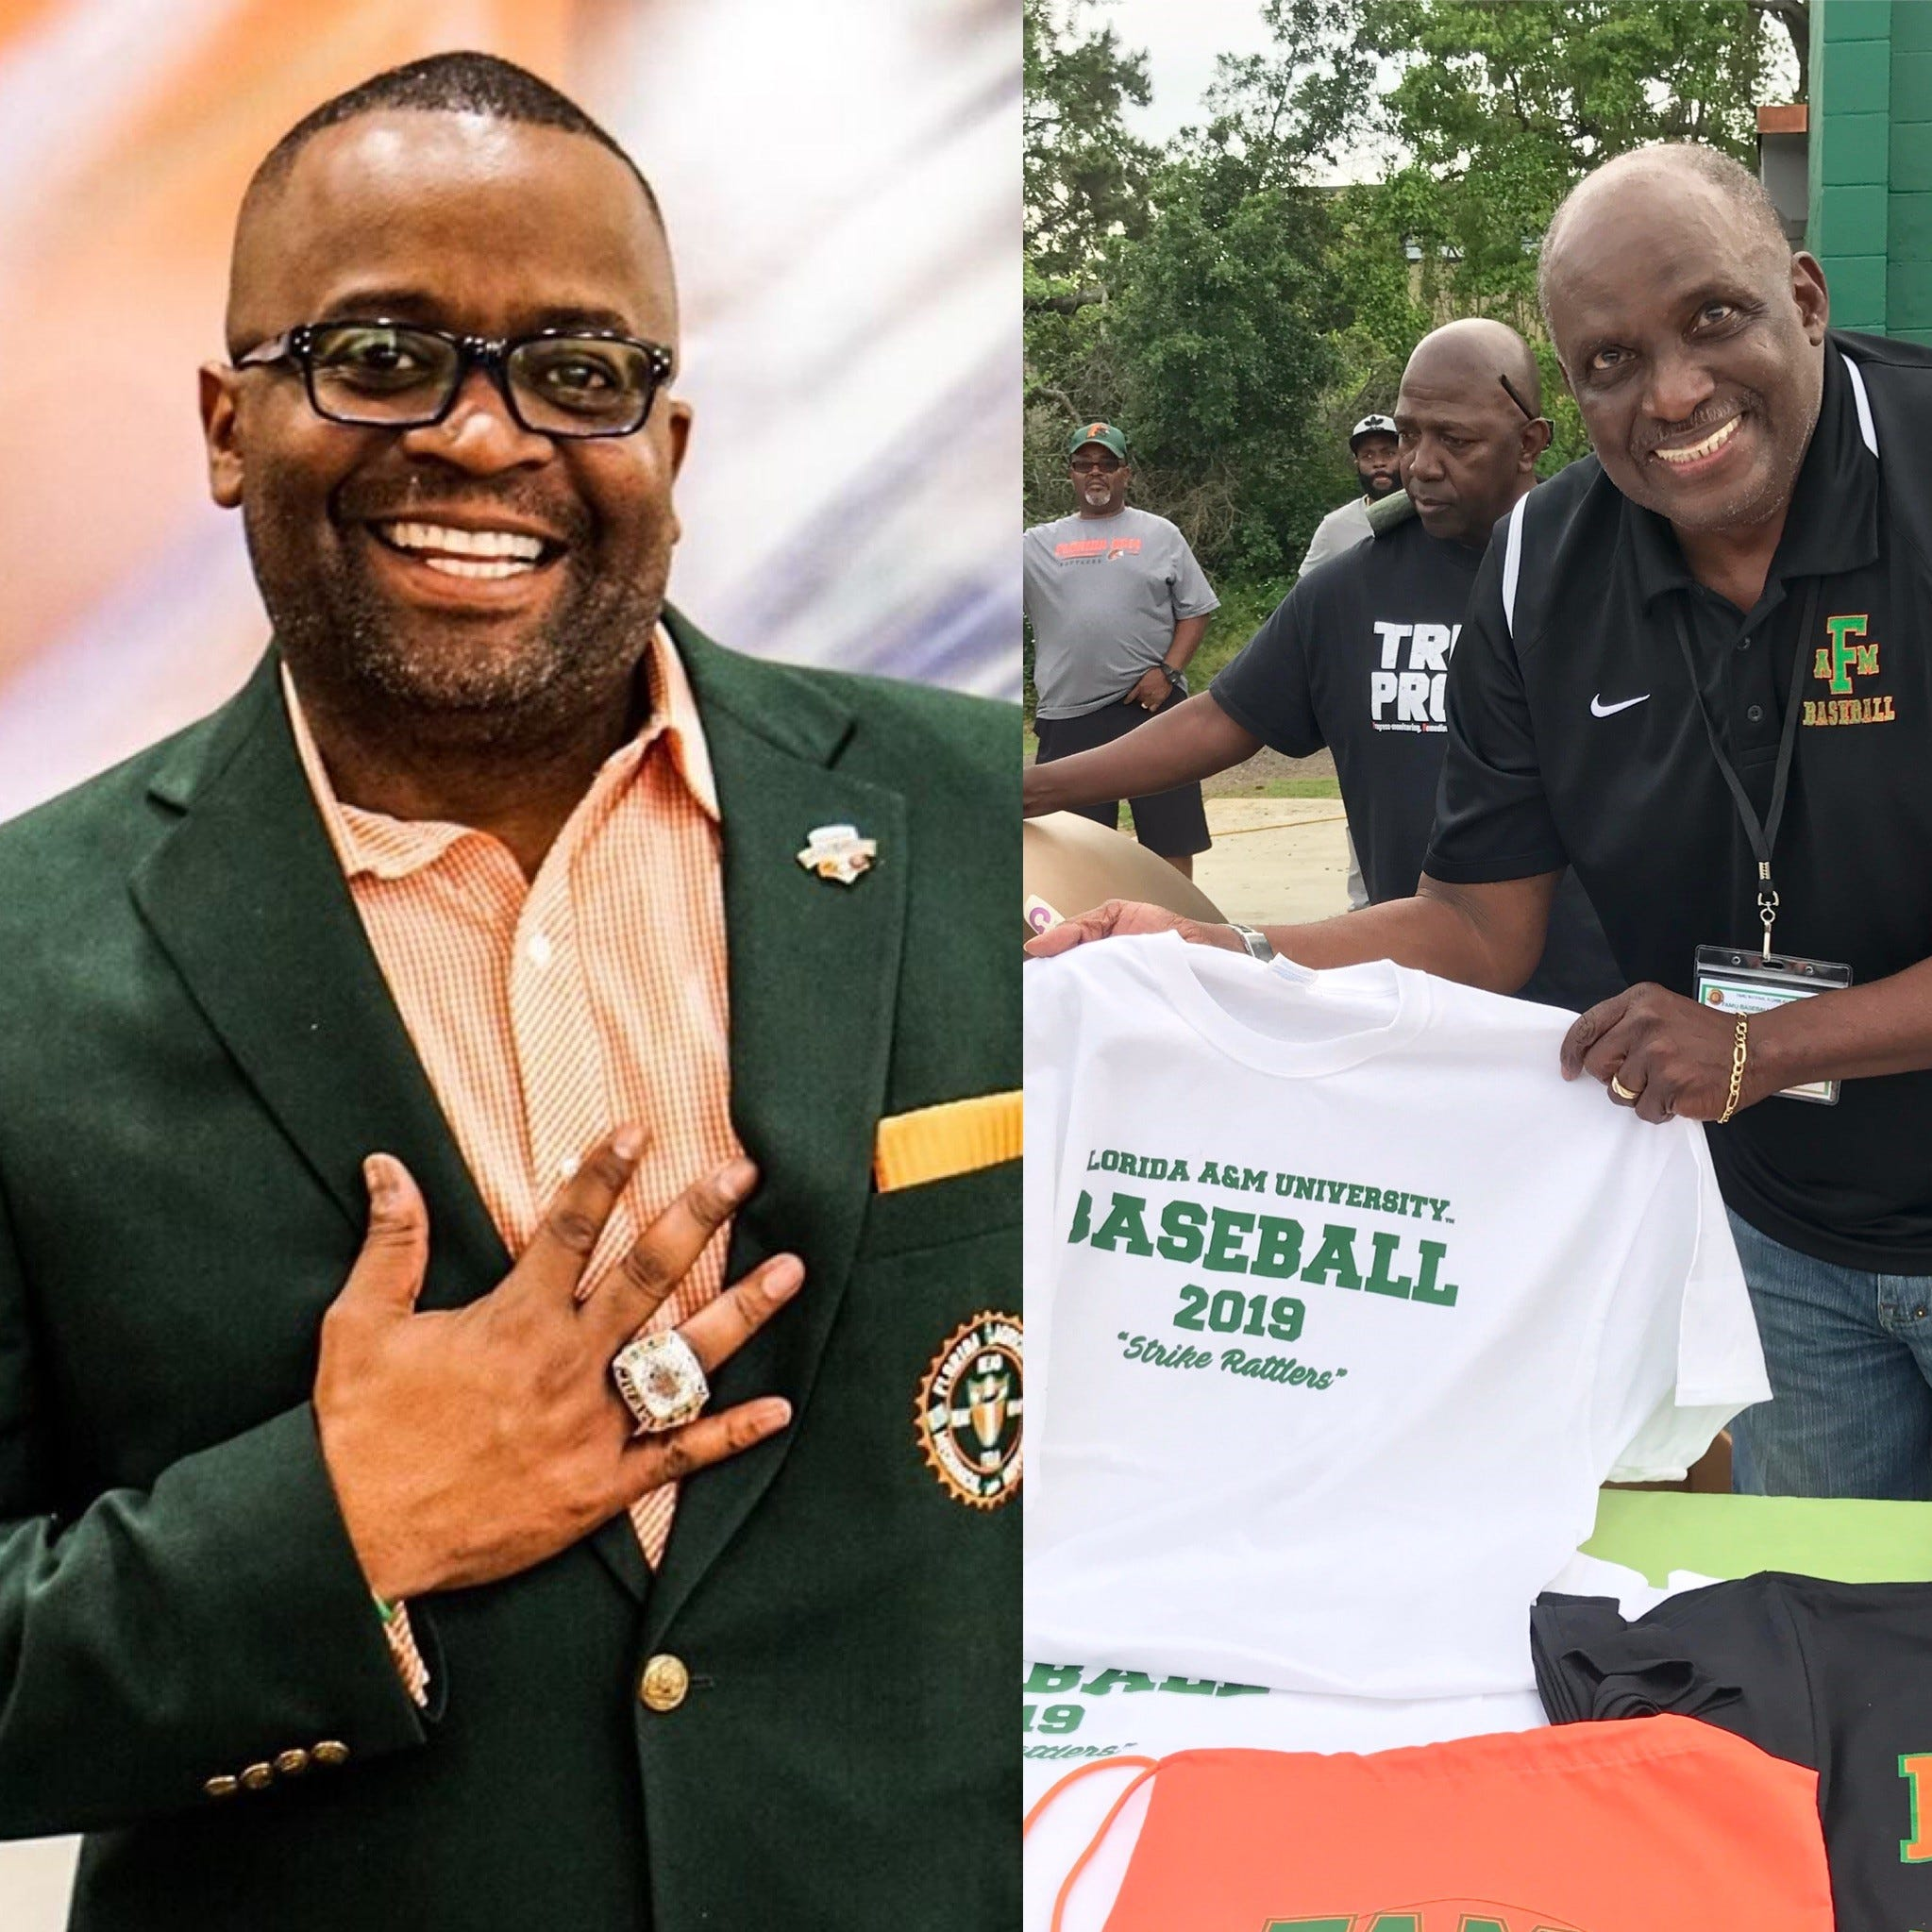 FAMU Sports Hall of Fame announces Class of 2019 inductees